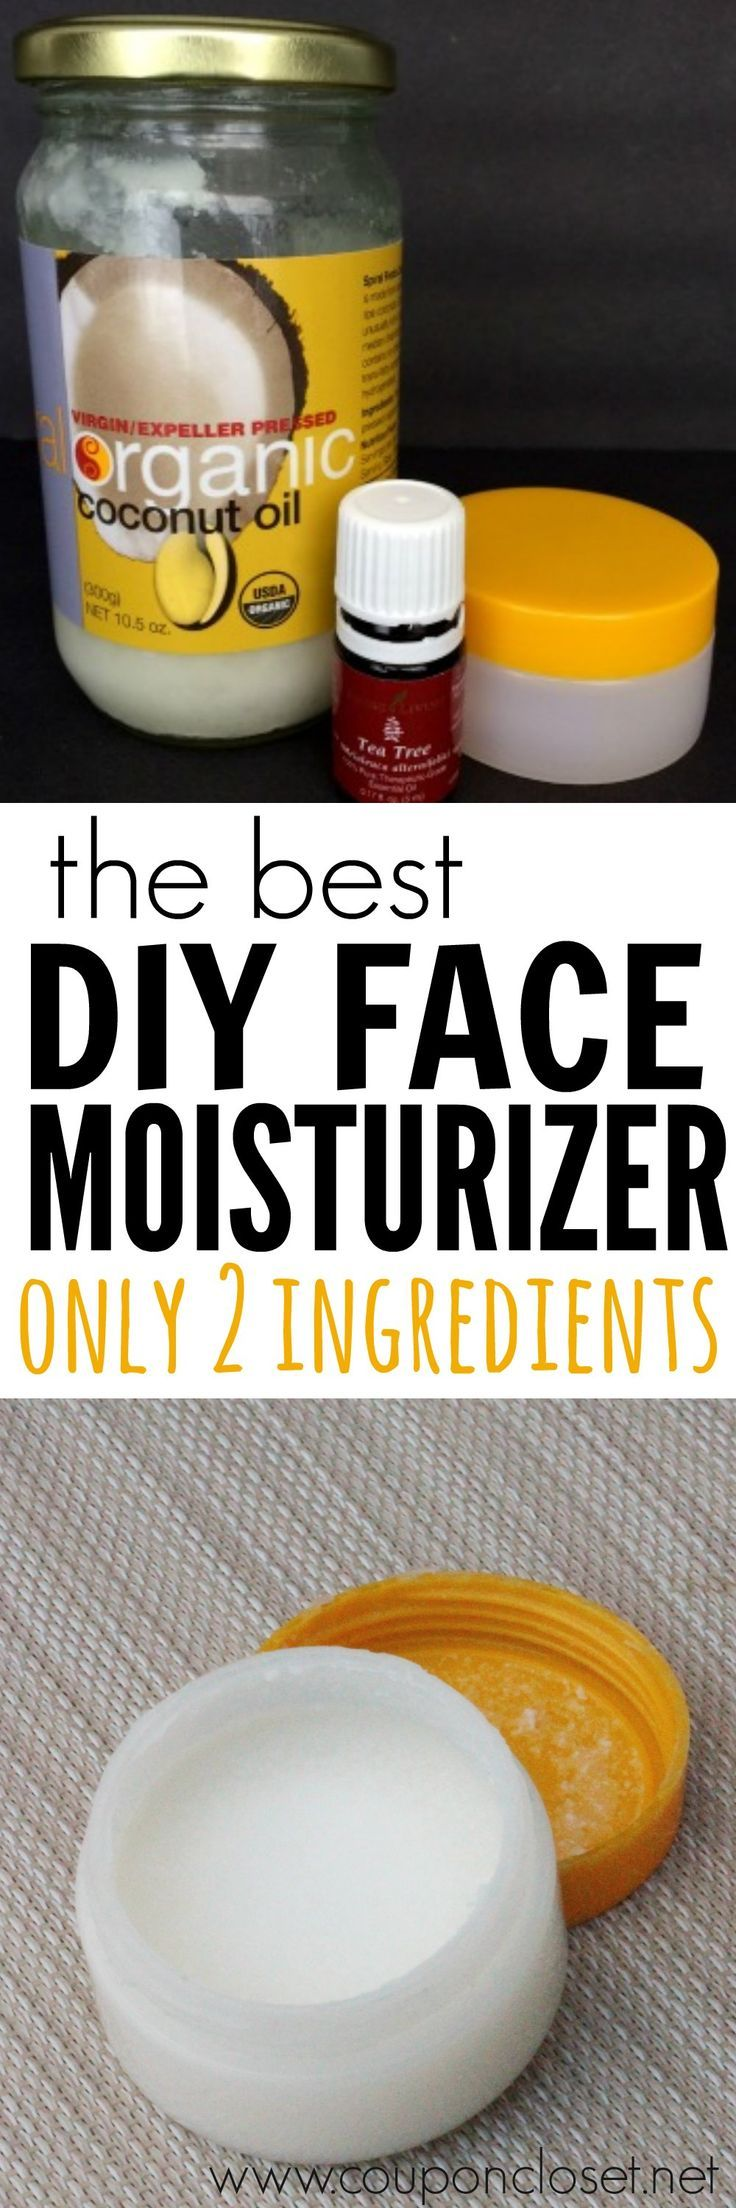 Diy face moisturizer best homemade face moisturizer moisturizers you have to try this diy face moisturizer with only 2 ingredients i know you solutioingenieria Gallery